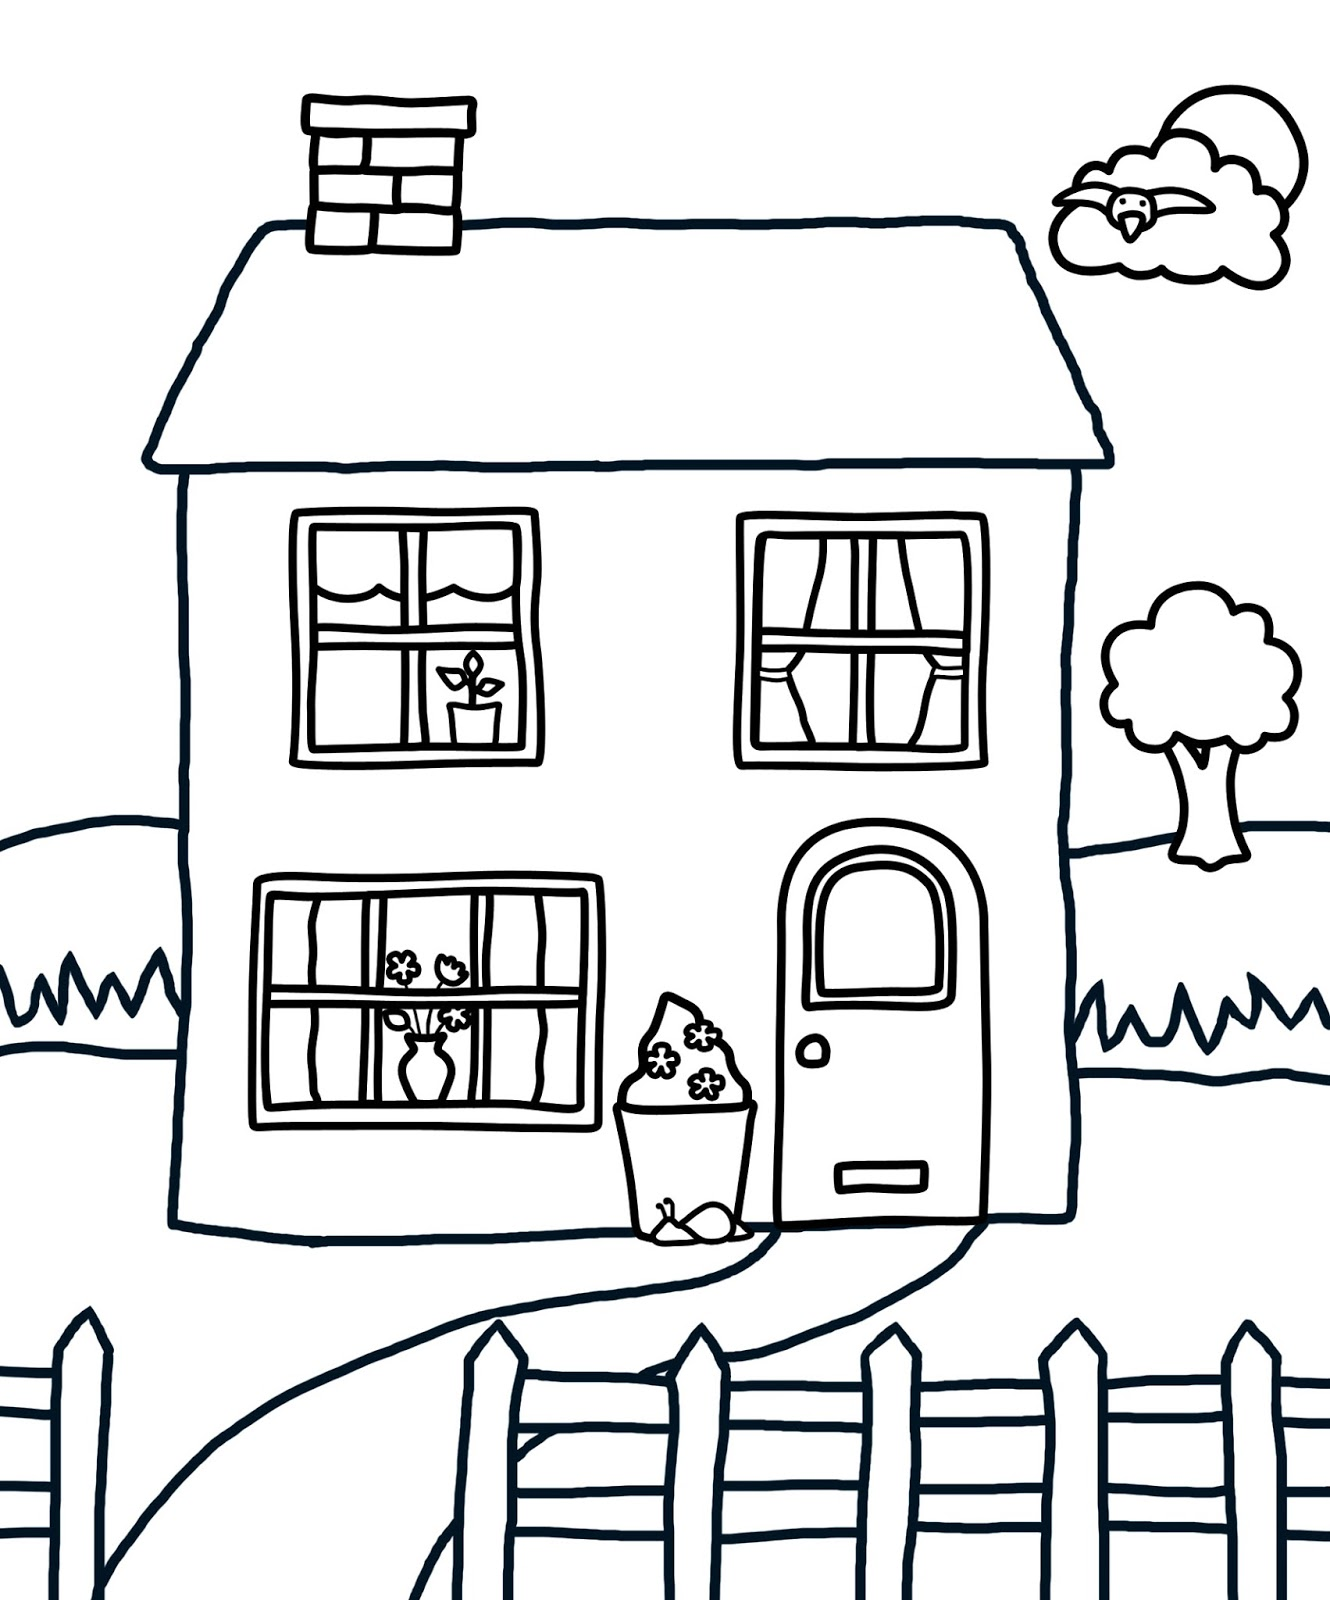 People and jobs coloring pages for kids houses colouring for Houses coloring pages